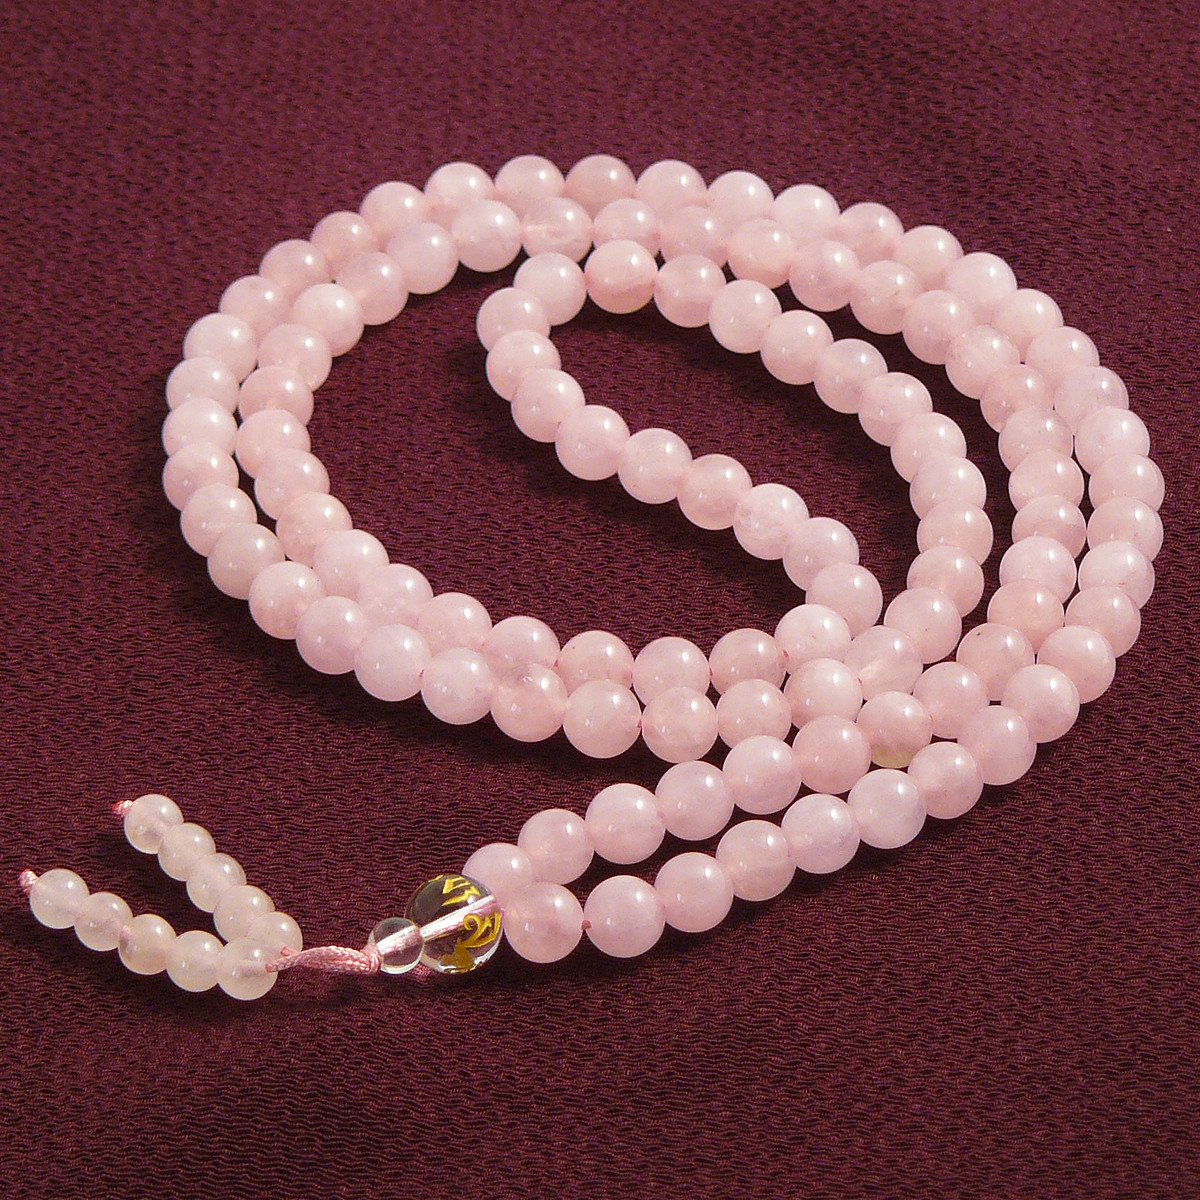 quartz mala buddhist prayer ziji